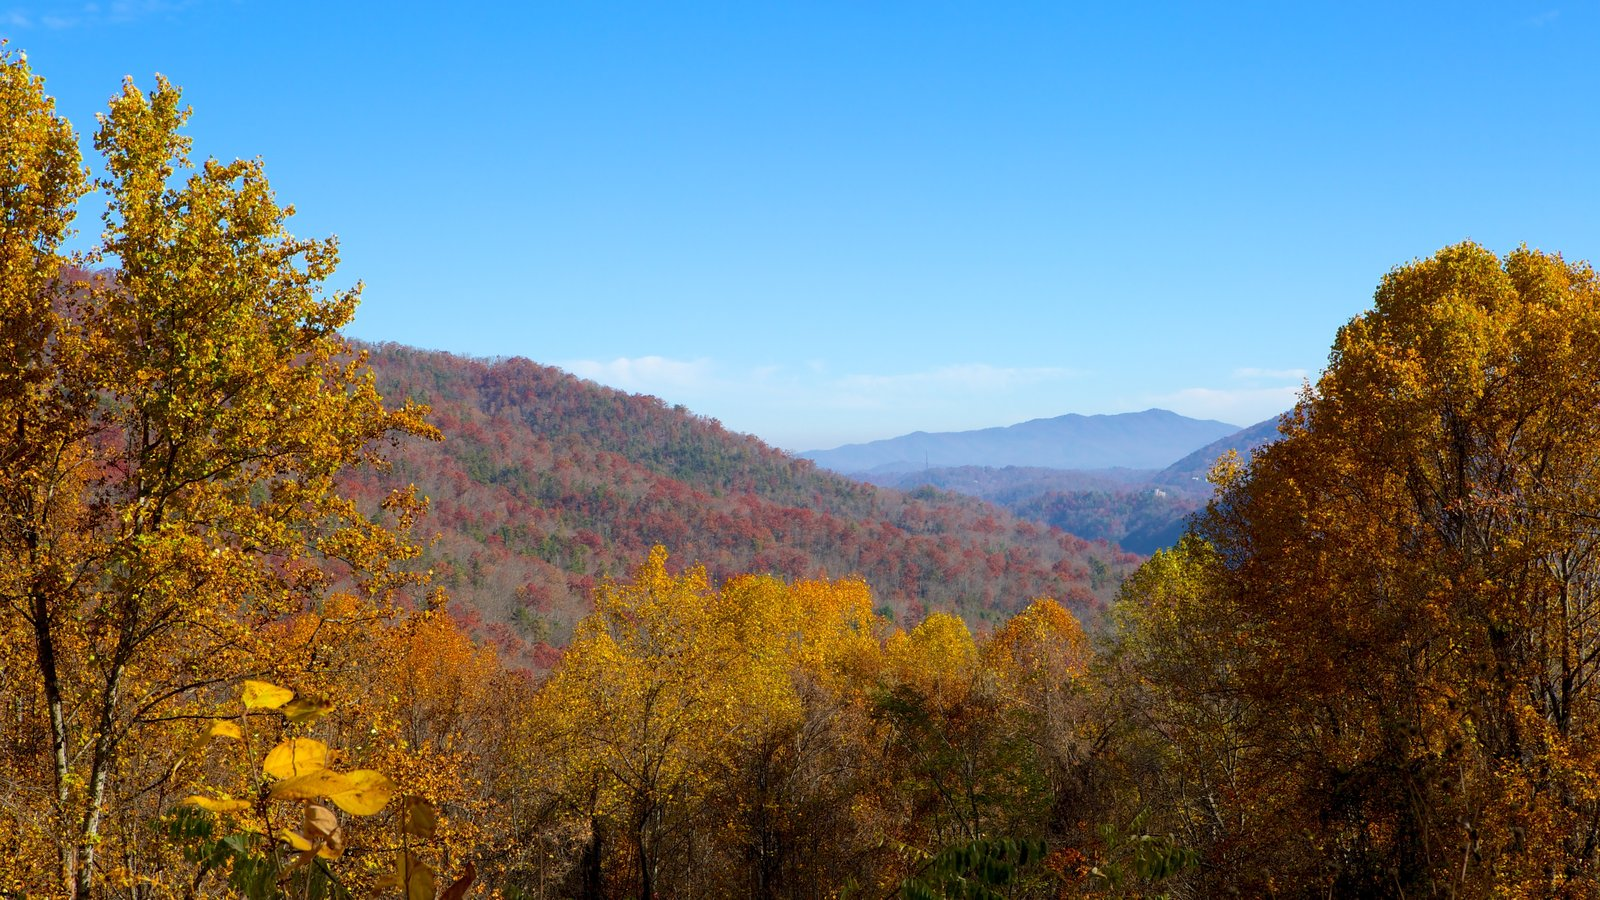 Gatlinburg showing mountains, forests and landscape views